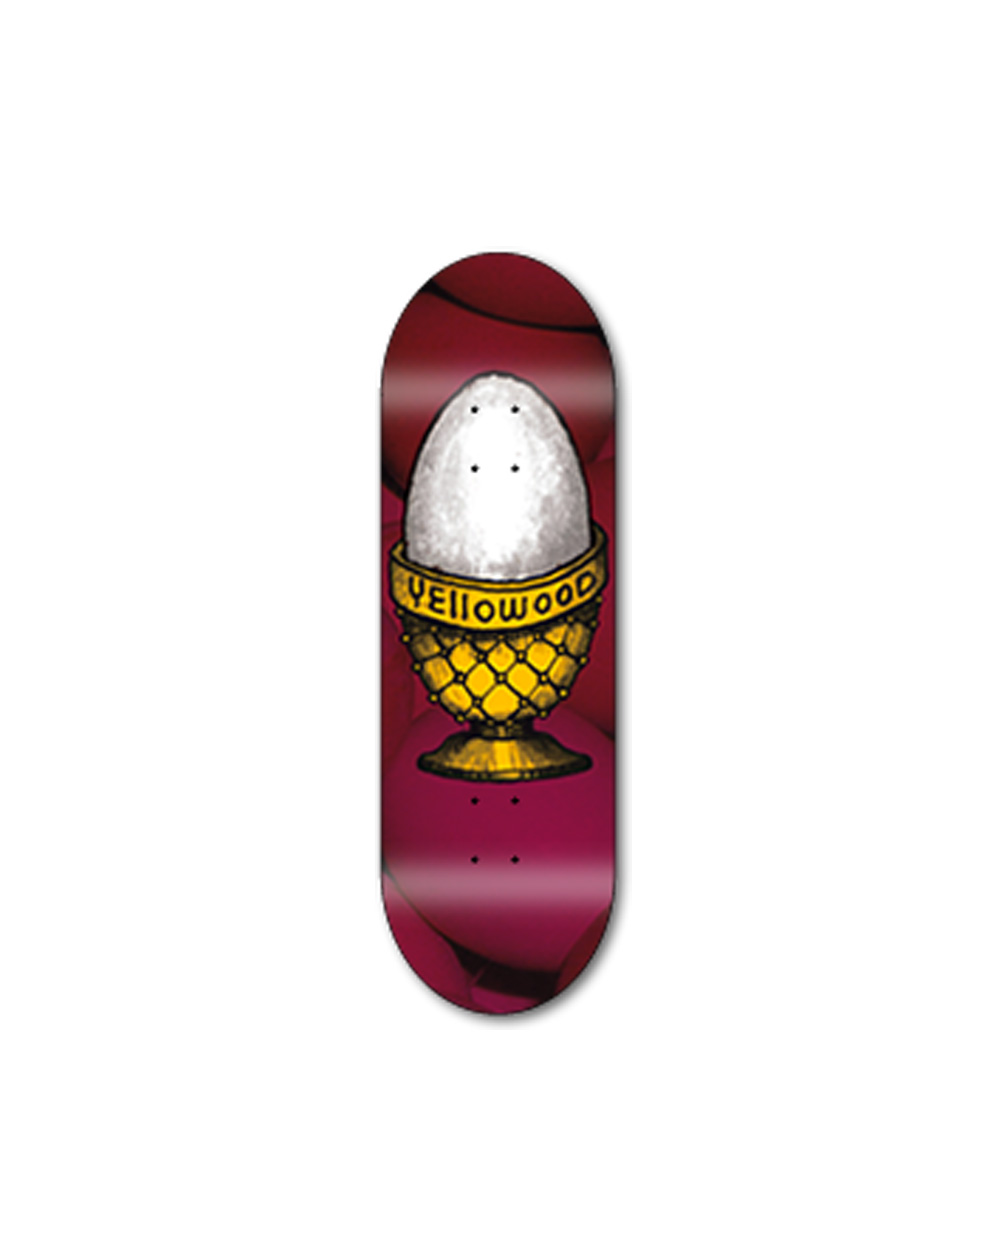 Yellowood Tavola Fingerboard Egg Z3